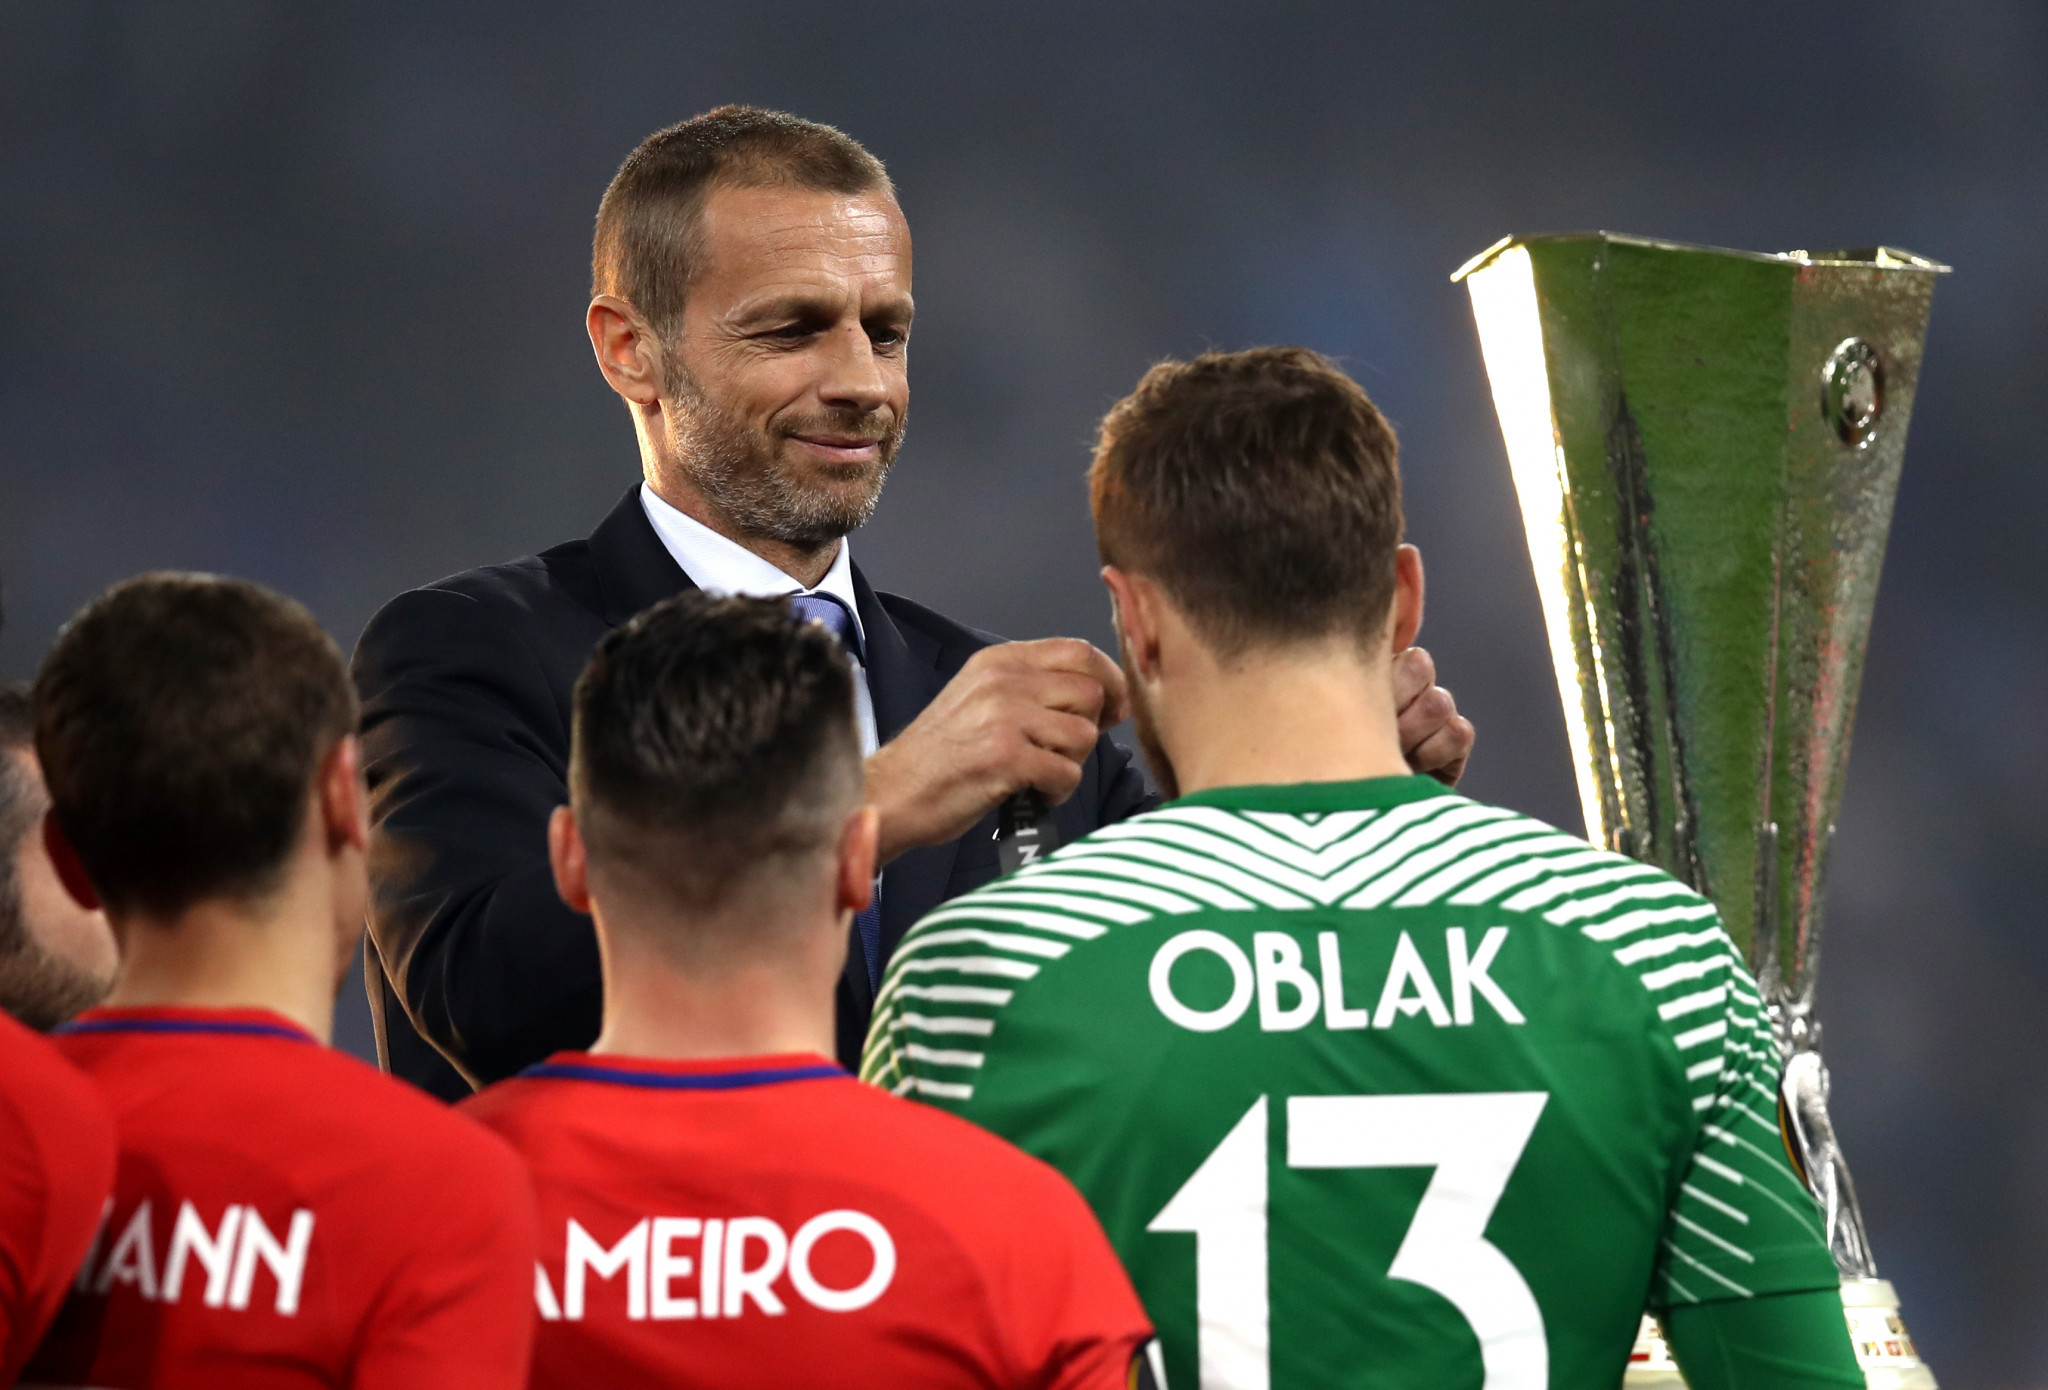 UEFA President Aleksander Ceferin was among the attendees at the meeting ©Getty Images